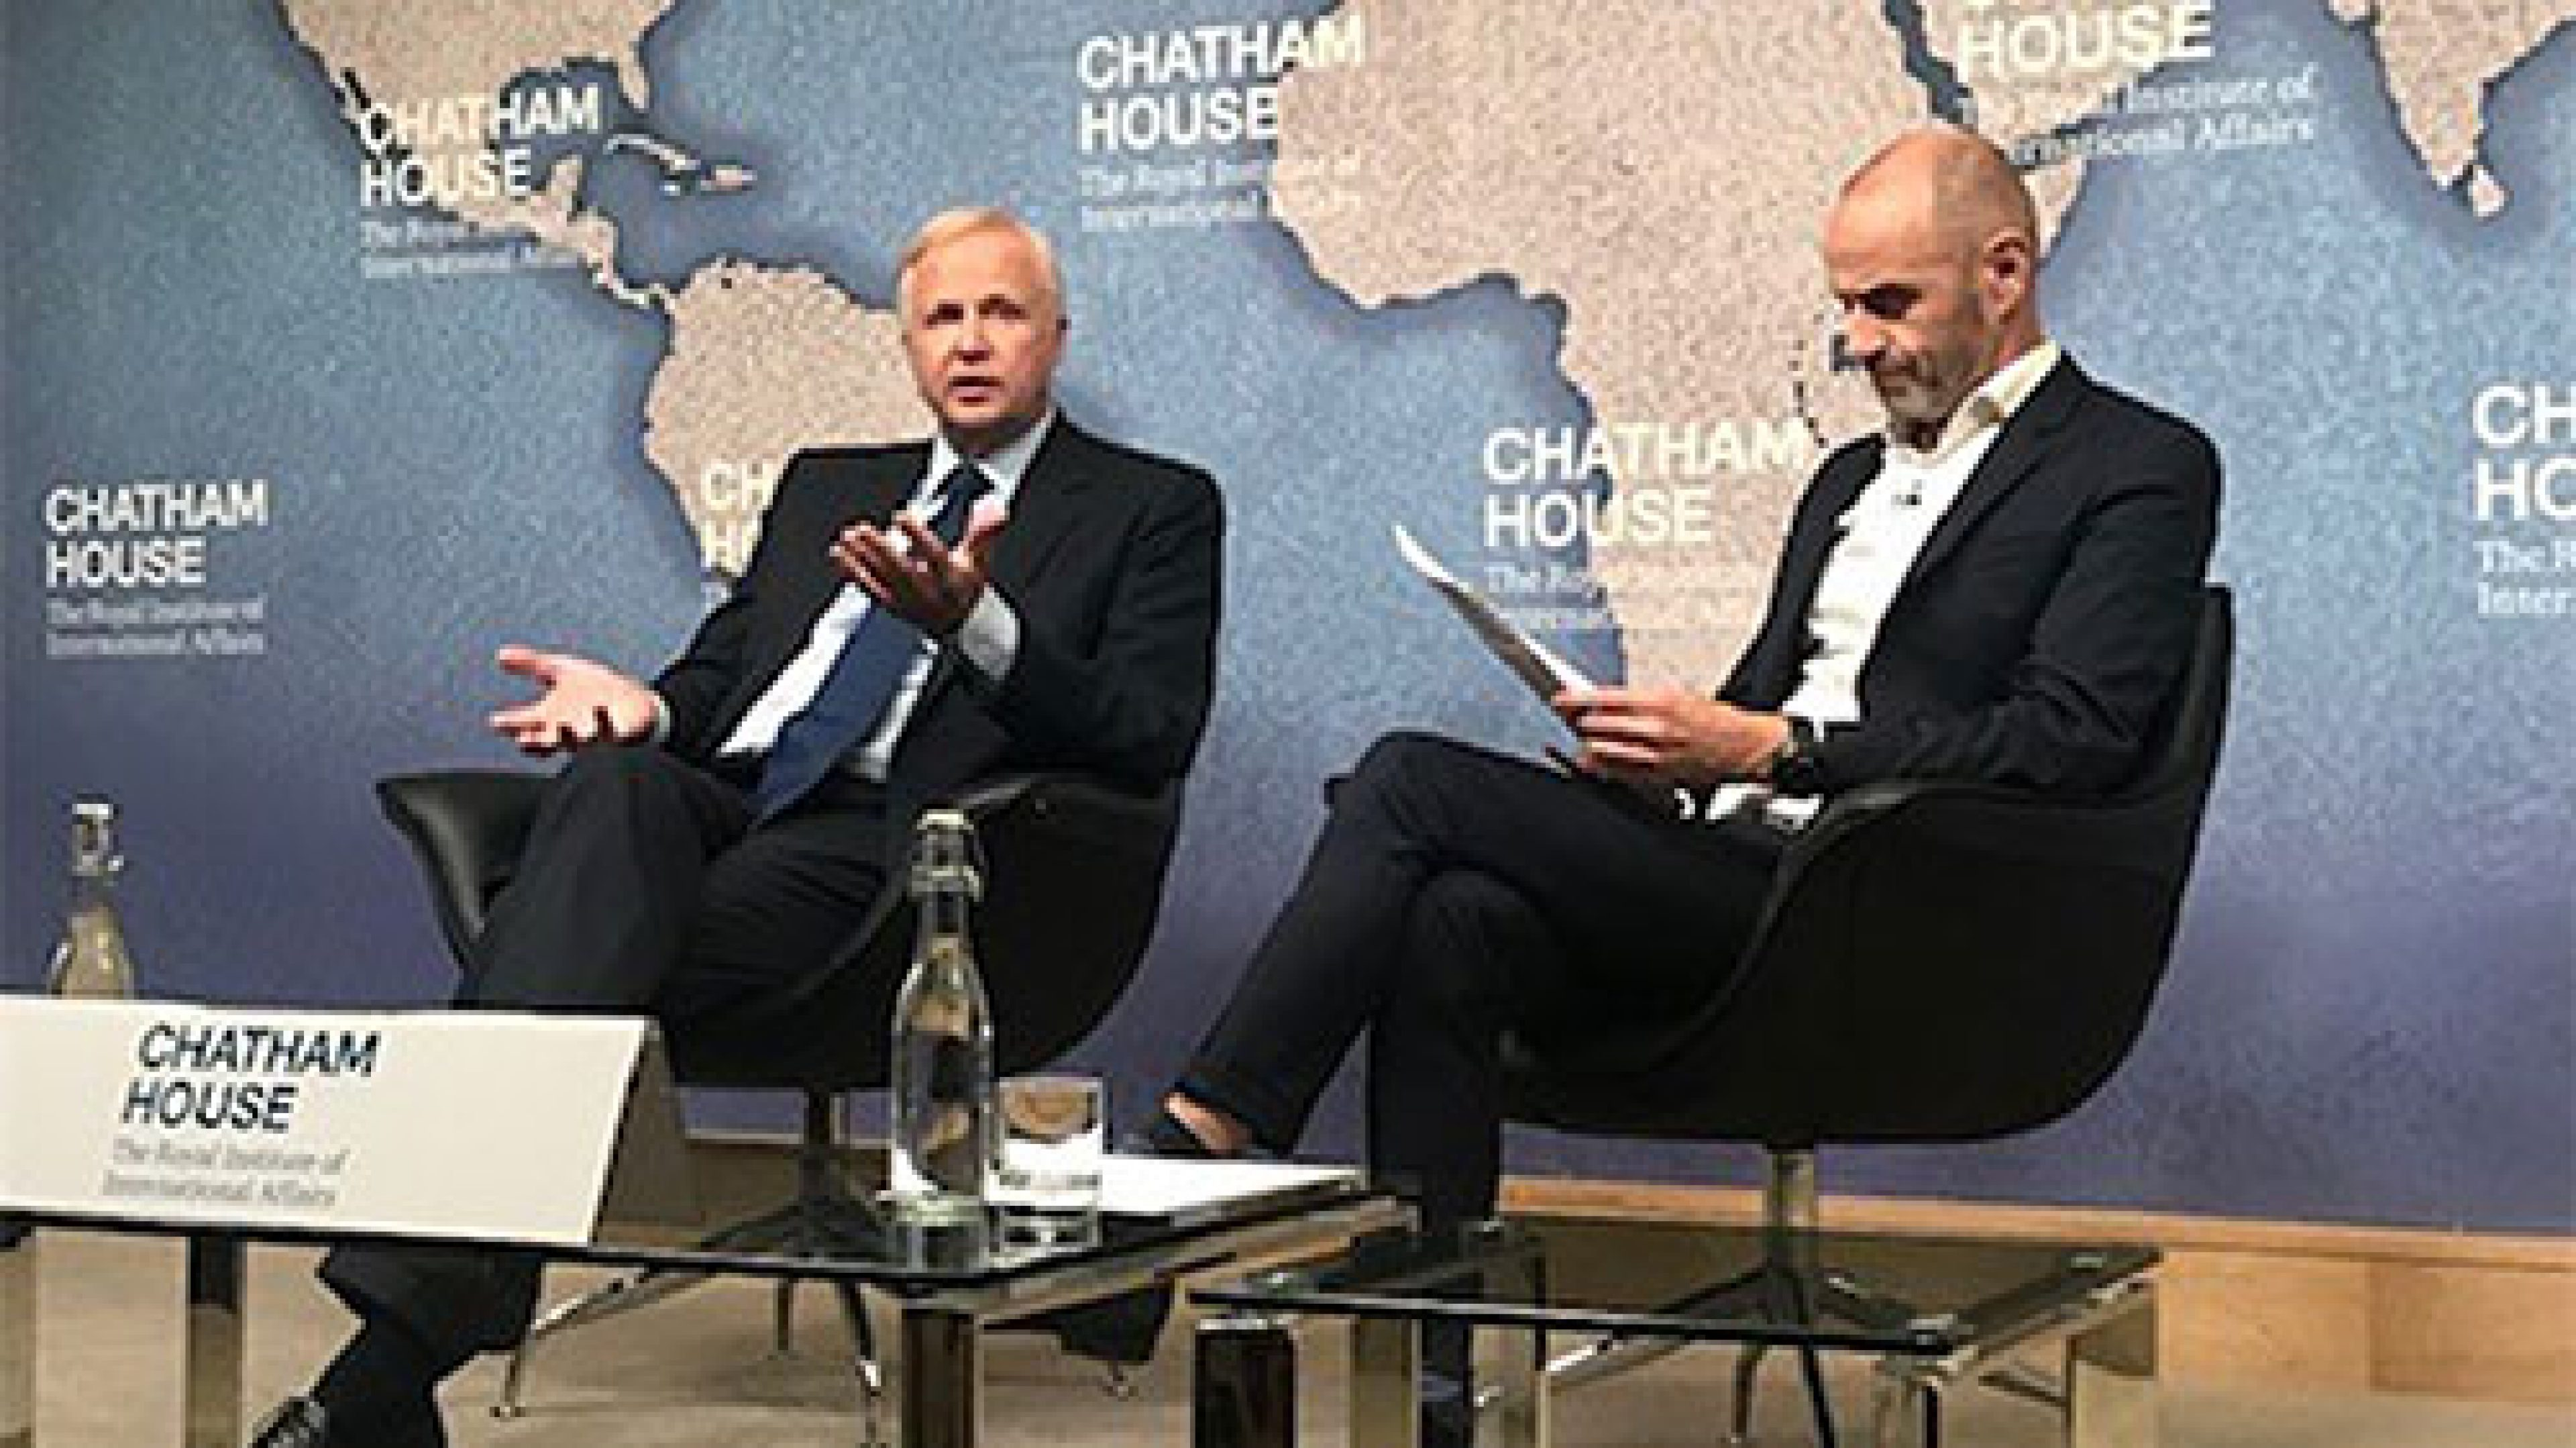 Bob Dudley, group chief executive at Chatham house, London